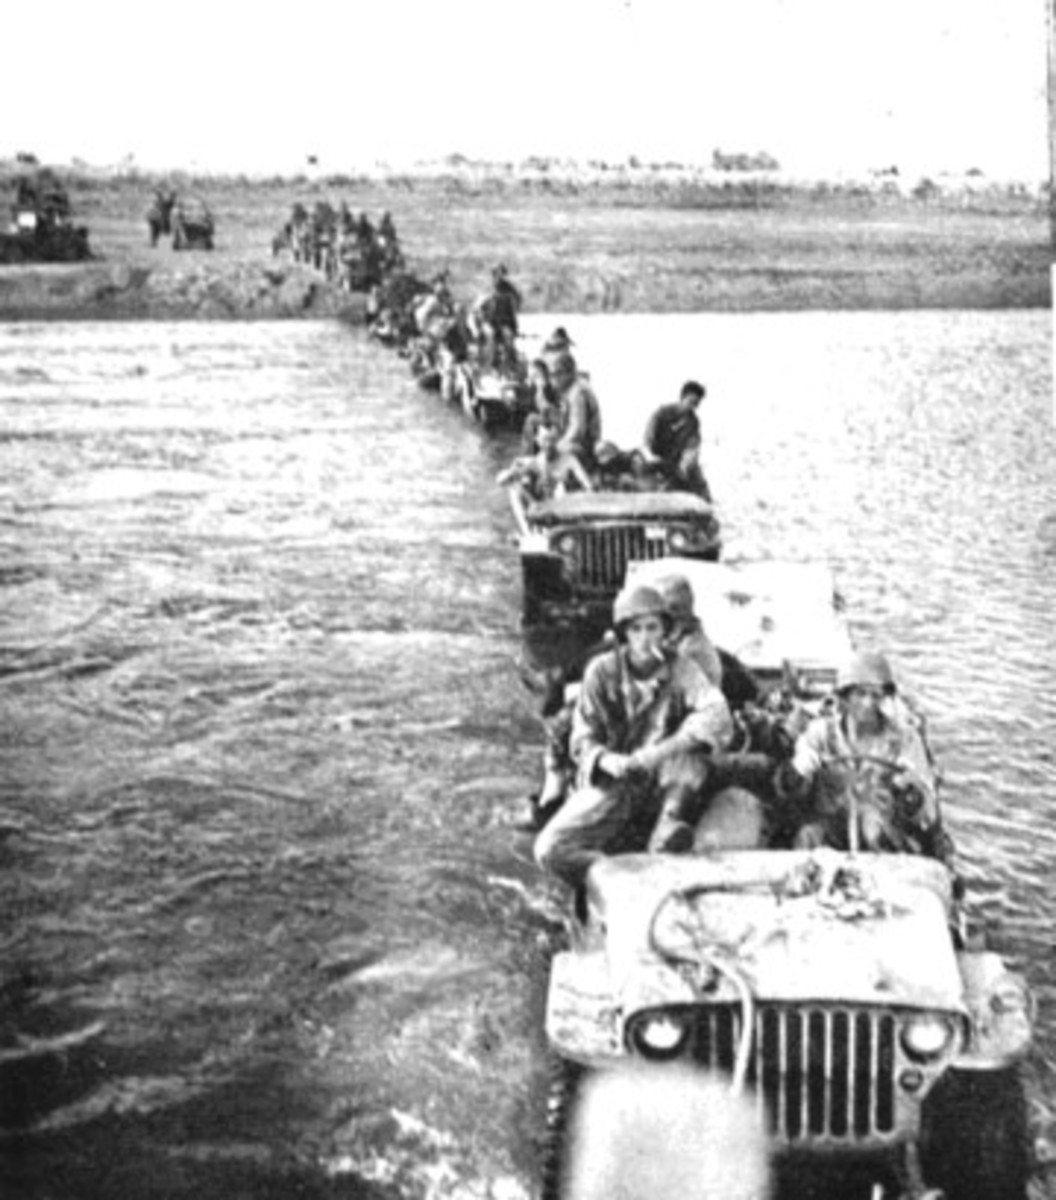 1st U.S. Cavalry Division jeeps crossing the Pampanga River in early 1945.